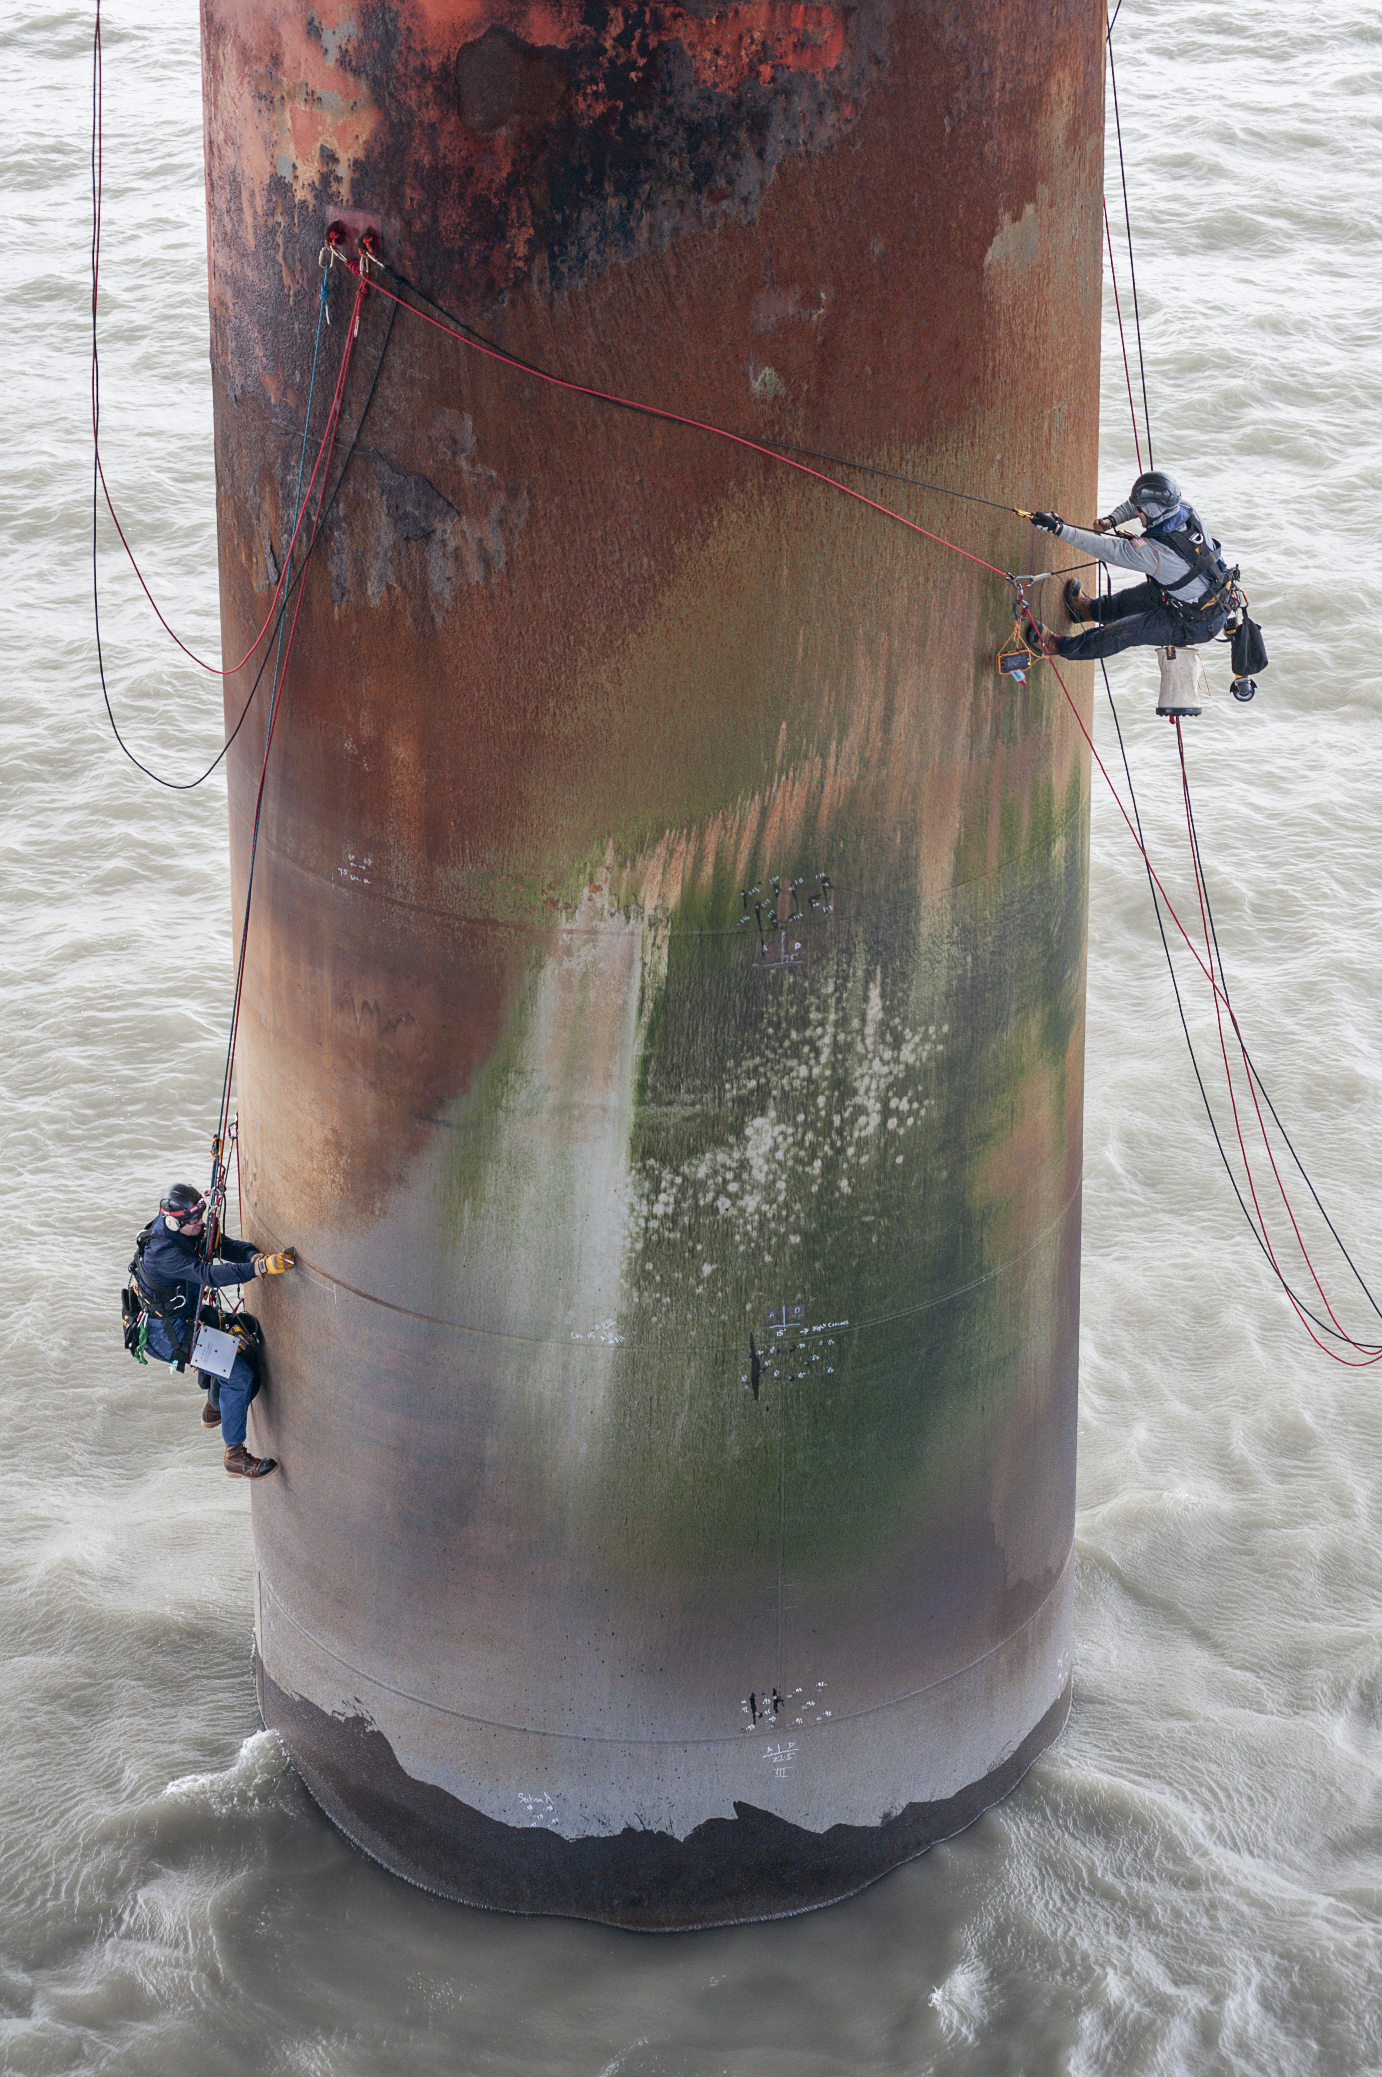 Two rope access technicians work on offshore oil rig.